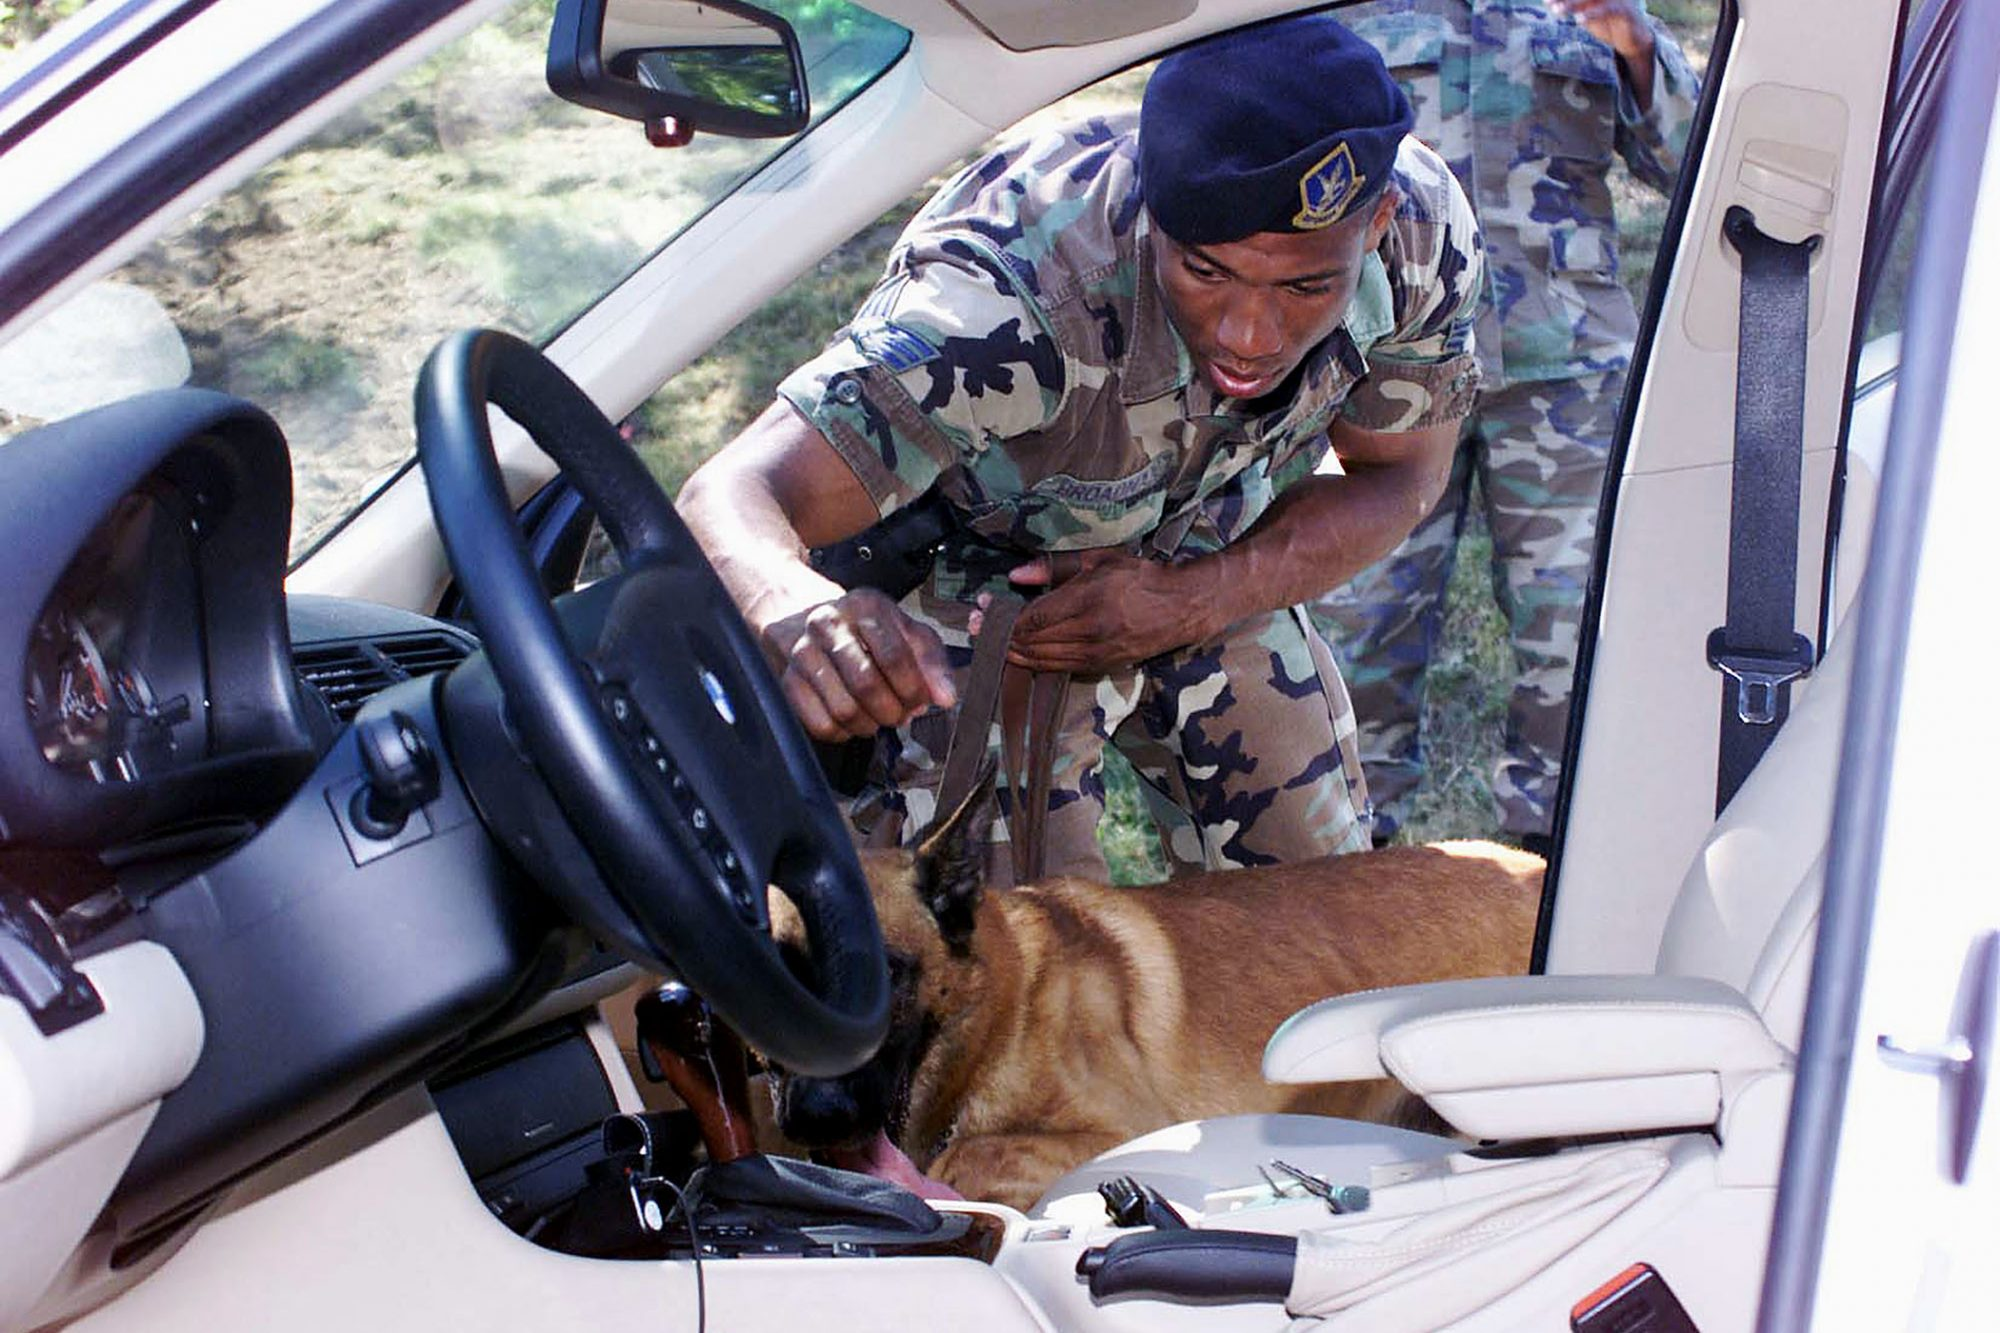 A man in fatigues uses a dog to search a car on 9/11